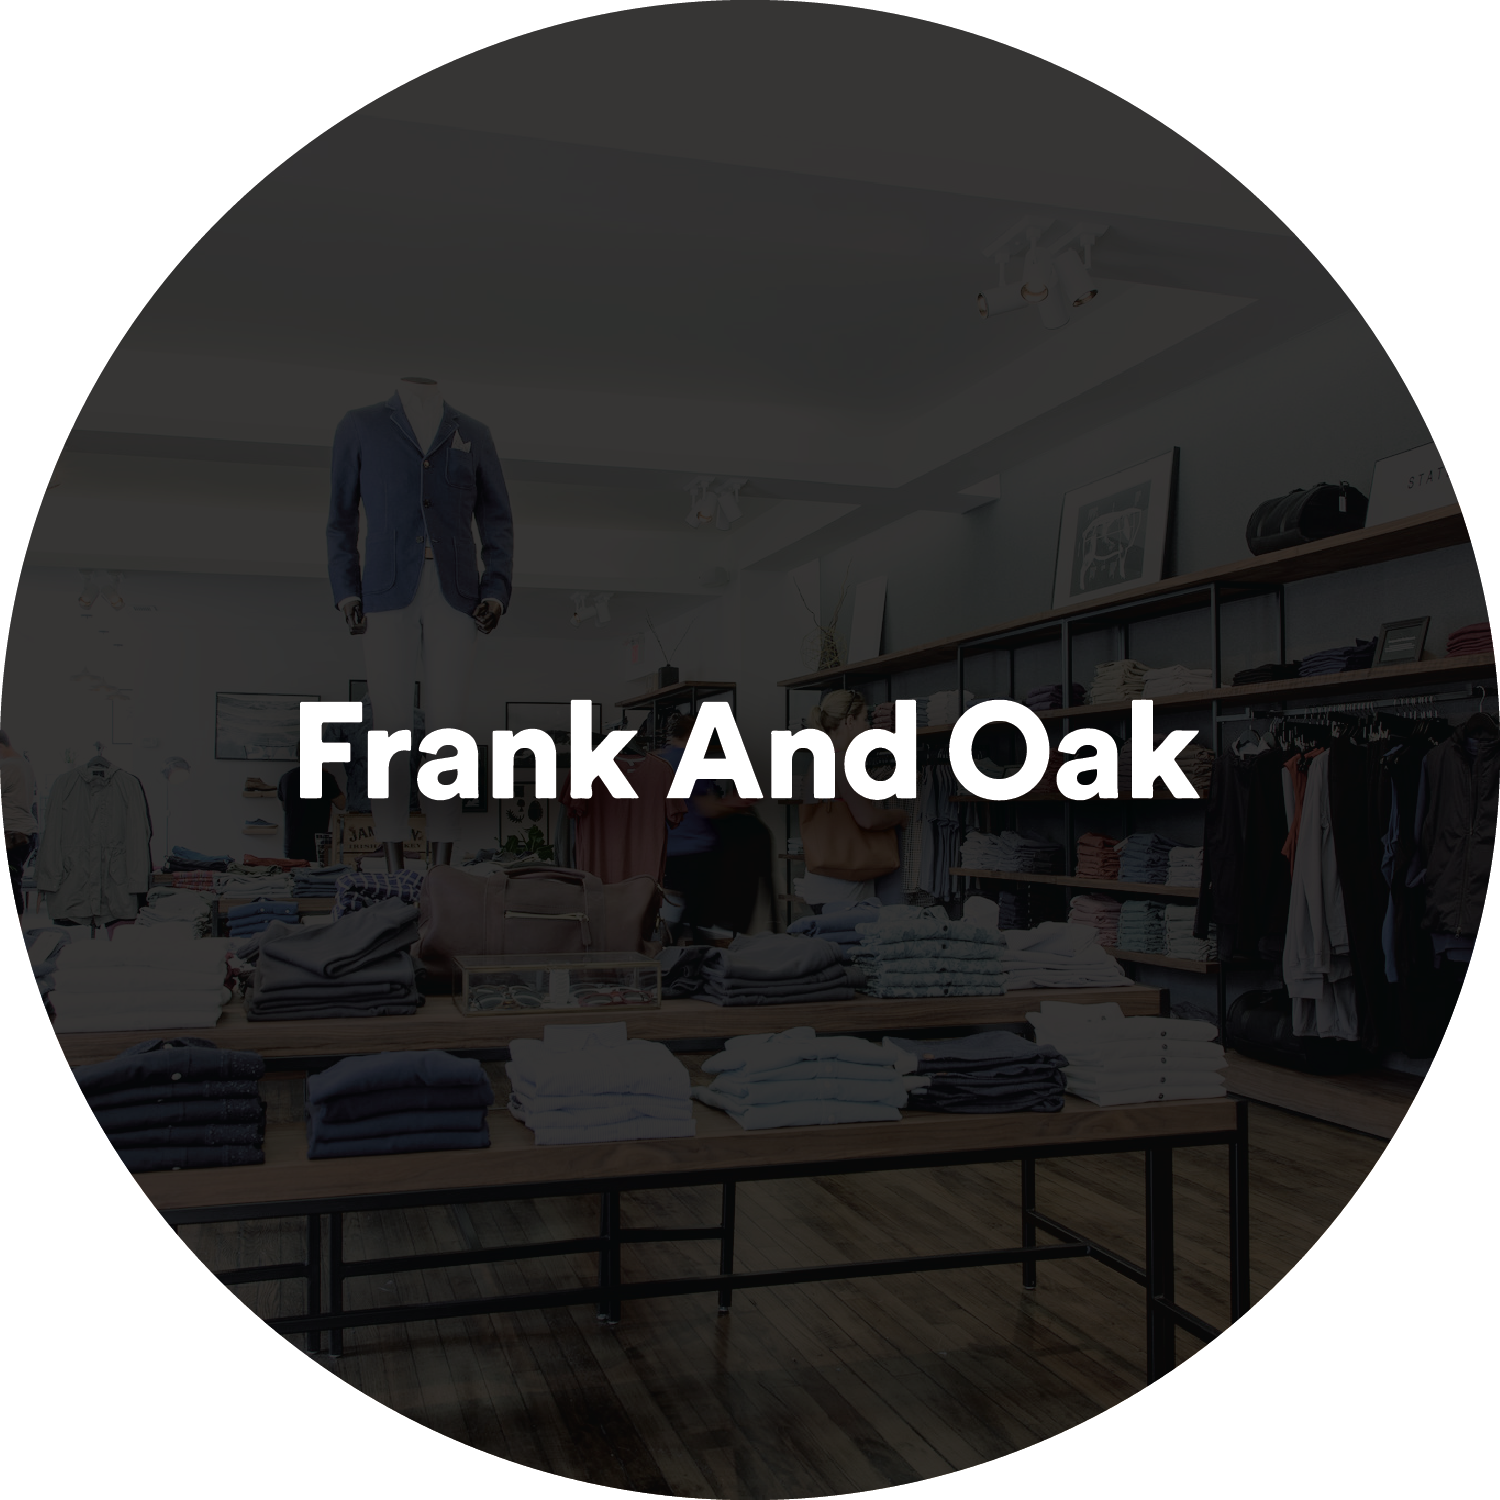 Frank and Oak-01.png